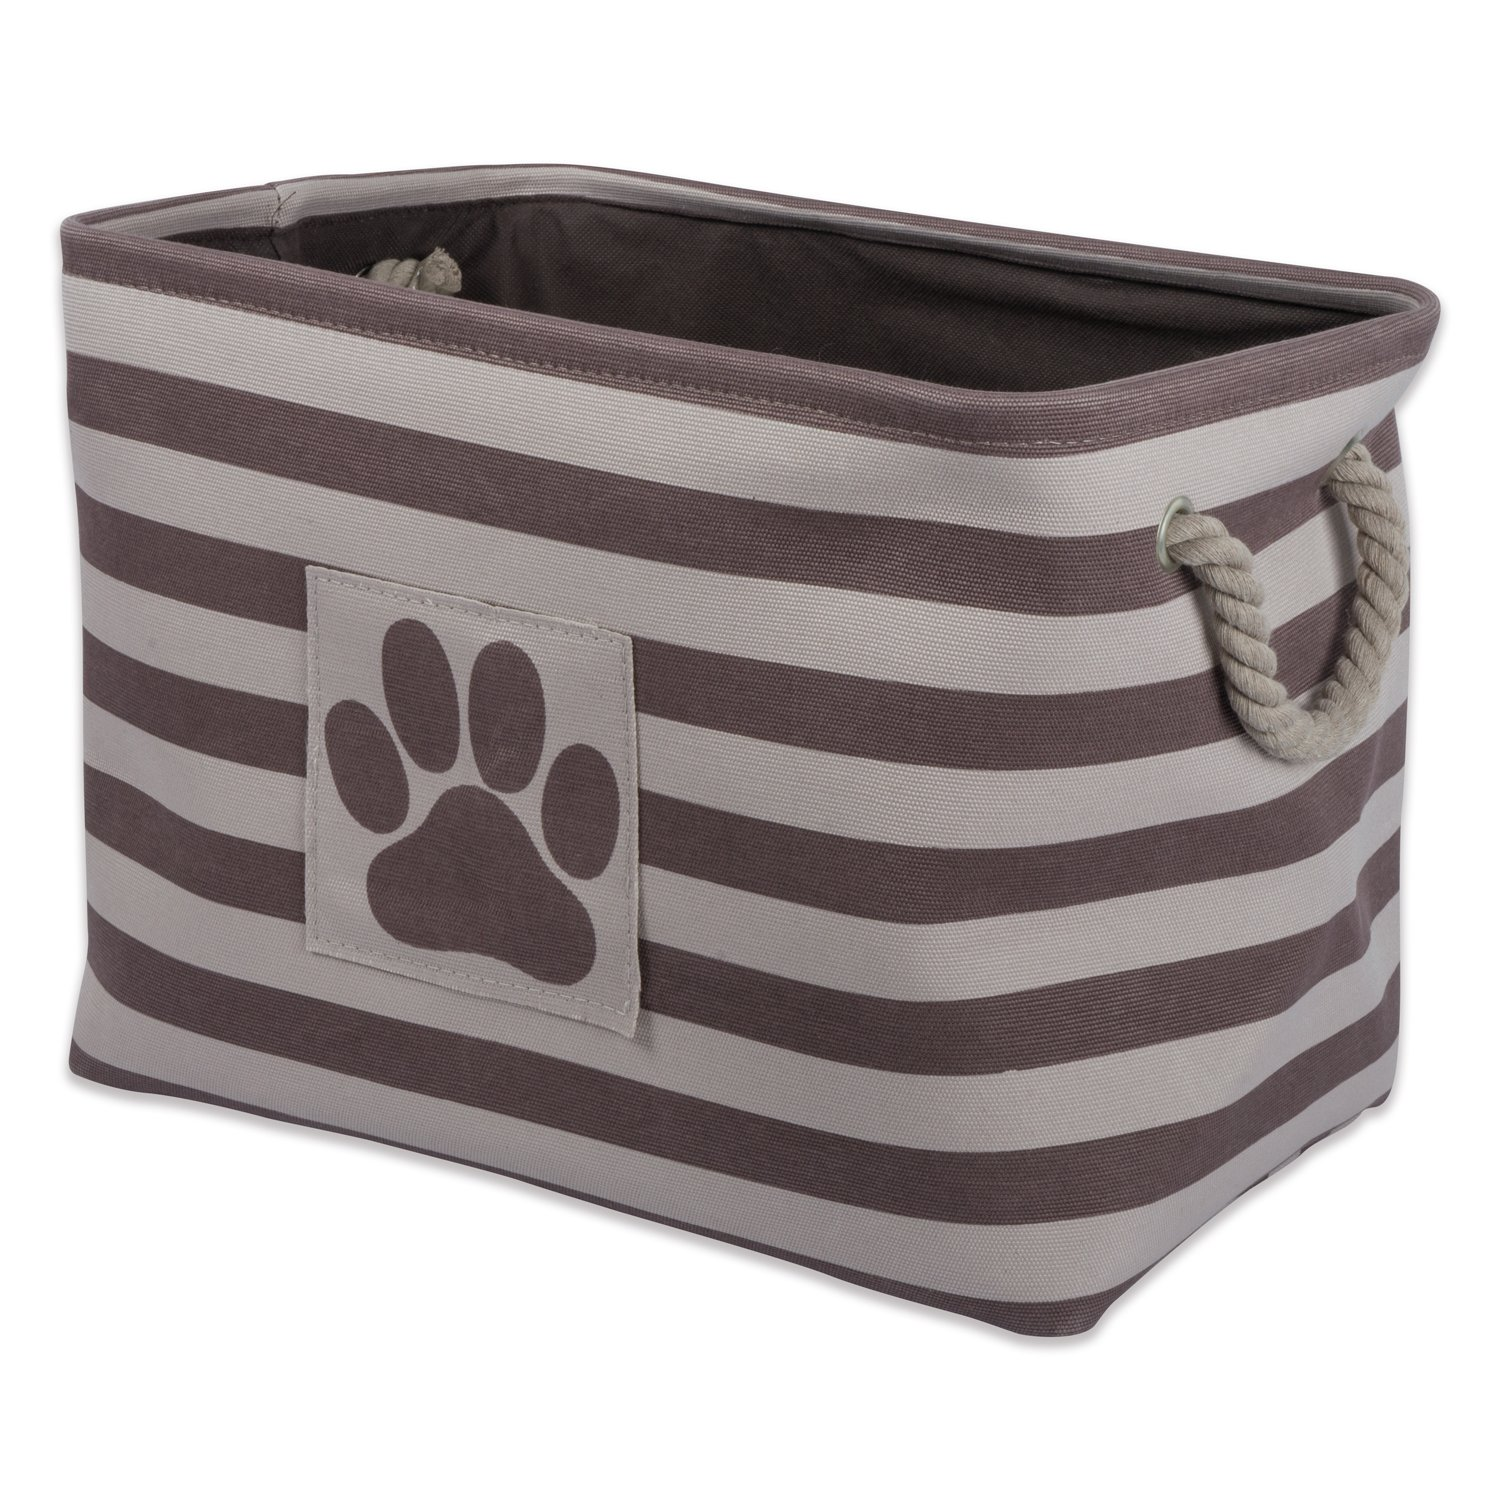 DII Bone Dry Large Rectangle Pet Toy and Accessory Storage Bin, 18x12x15'', Collapsible Organizer Storage Basket for Home Décor, Pet Toy, Blankets, Leashes and Food-Brown Stripes